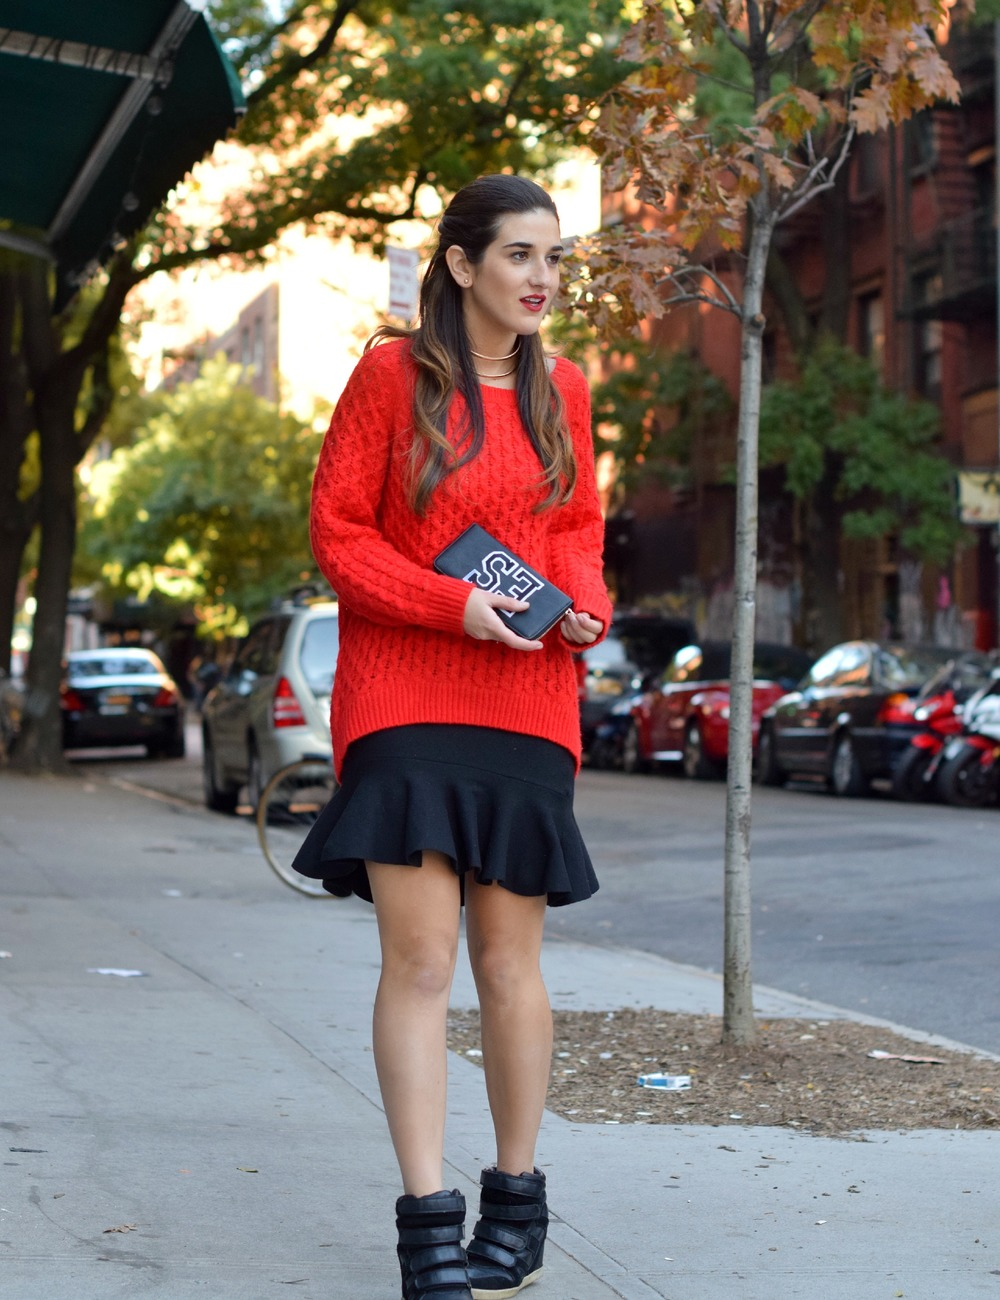 Red Sweater Black Ruffled Skirt Wow Couture Louboutins & Love Fashion Blog Esther Santer NYC Street Style Blogger Outfit OOTD Gold Collar Necklace Fall Winter Look Hair Inspo Inspiration How To Wear Shop Chunky Knits Girl Women Photoshoot Soho Wearing.jpg